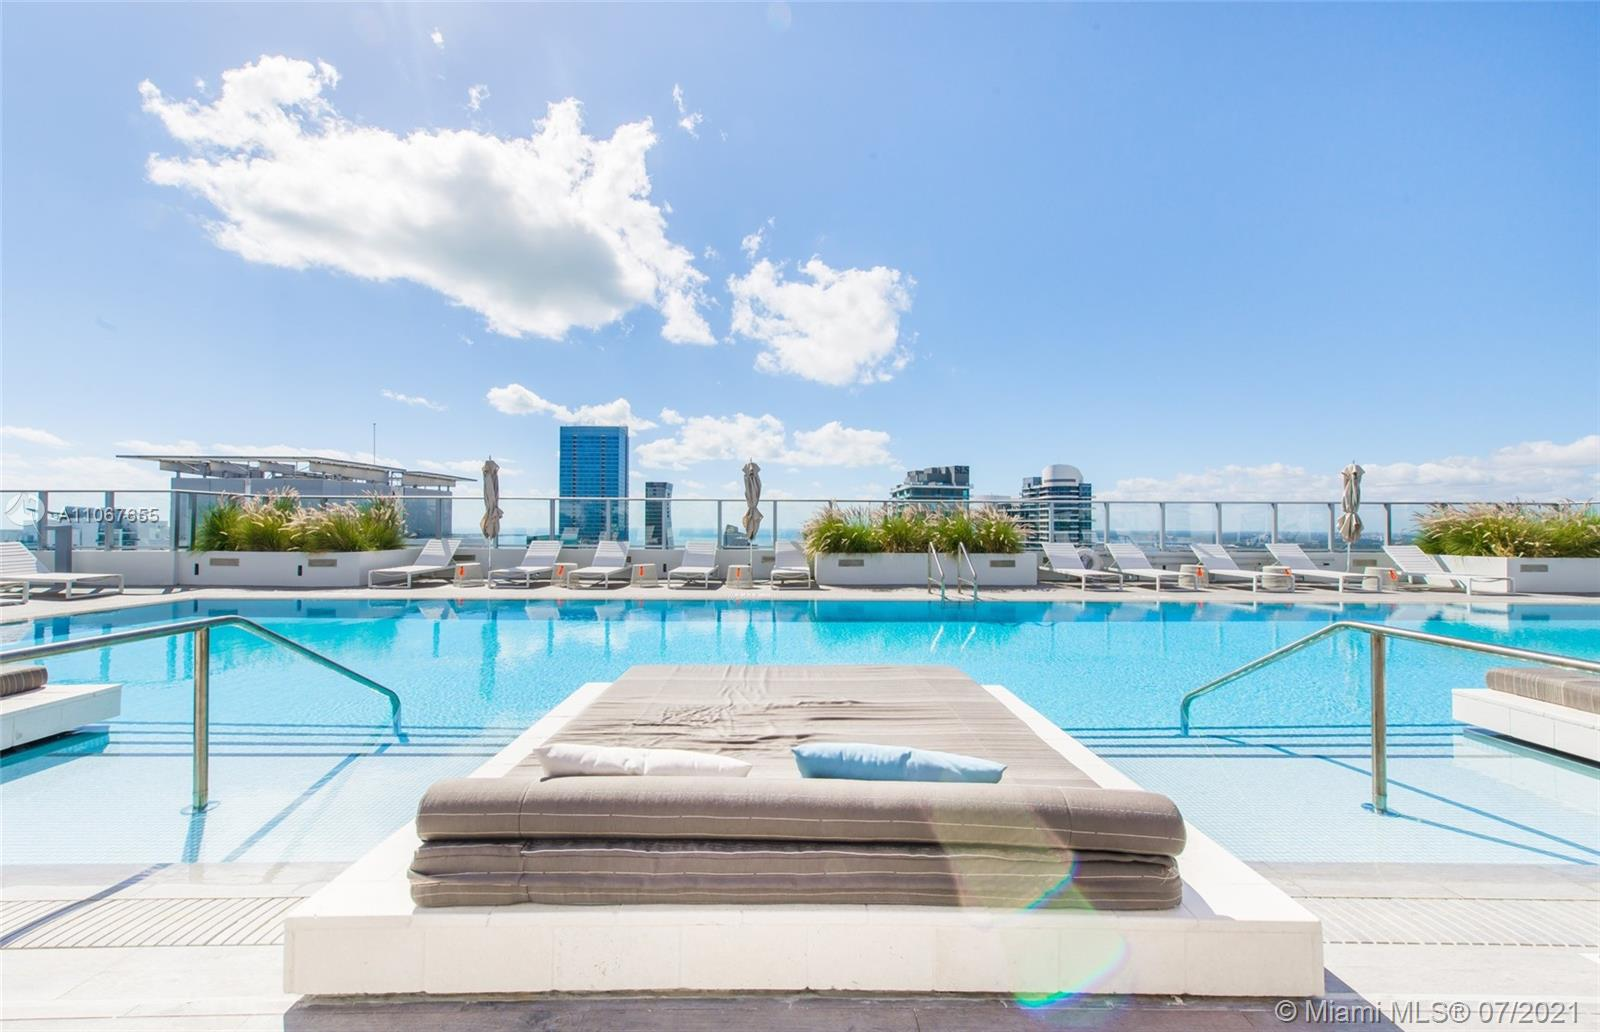 Spectacular upgraded unit at the iconic 1010 Brickell Condo. Professionally FURNISHED apartment, 1 bed, 2 baths, plus enclosed Den, high ceilings, huge balcony with stunning views, top of the line Smeg appliances! Building offers: outdoor movie theatre, restaurant & swimming pool @ 50th floor roof top; Co-ed Hammam spa w cold & hot Jacuzzi, massage & treatments rooms, sauna & steam room; basketball & racquetball courts, running track, indoor heated swimming pool, fitness center, party room w kitchen, open terrace & barbeque, kids room w bowling, virtual golf, among others. Excellent location next to public transportation, Brickell City Centre, & more. Available from August 01, 2021 until December 31, 2021.